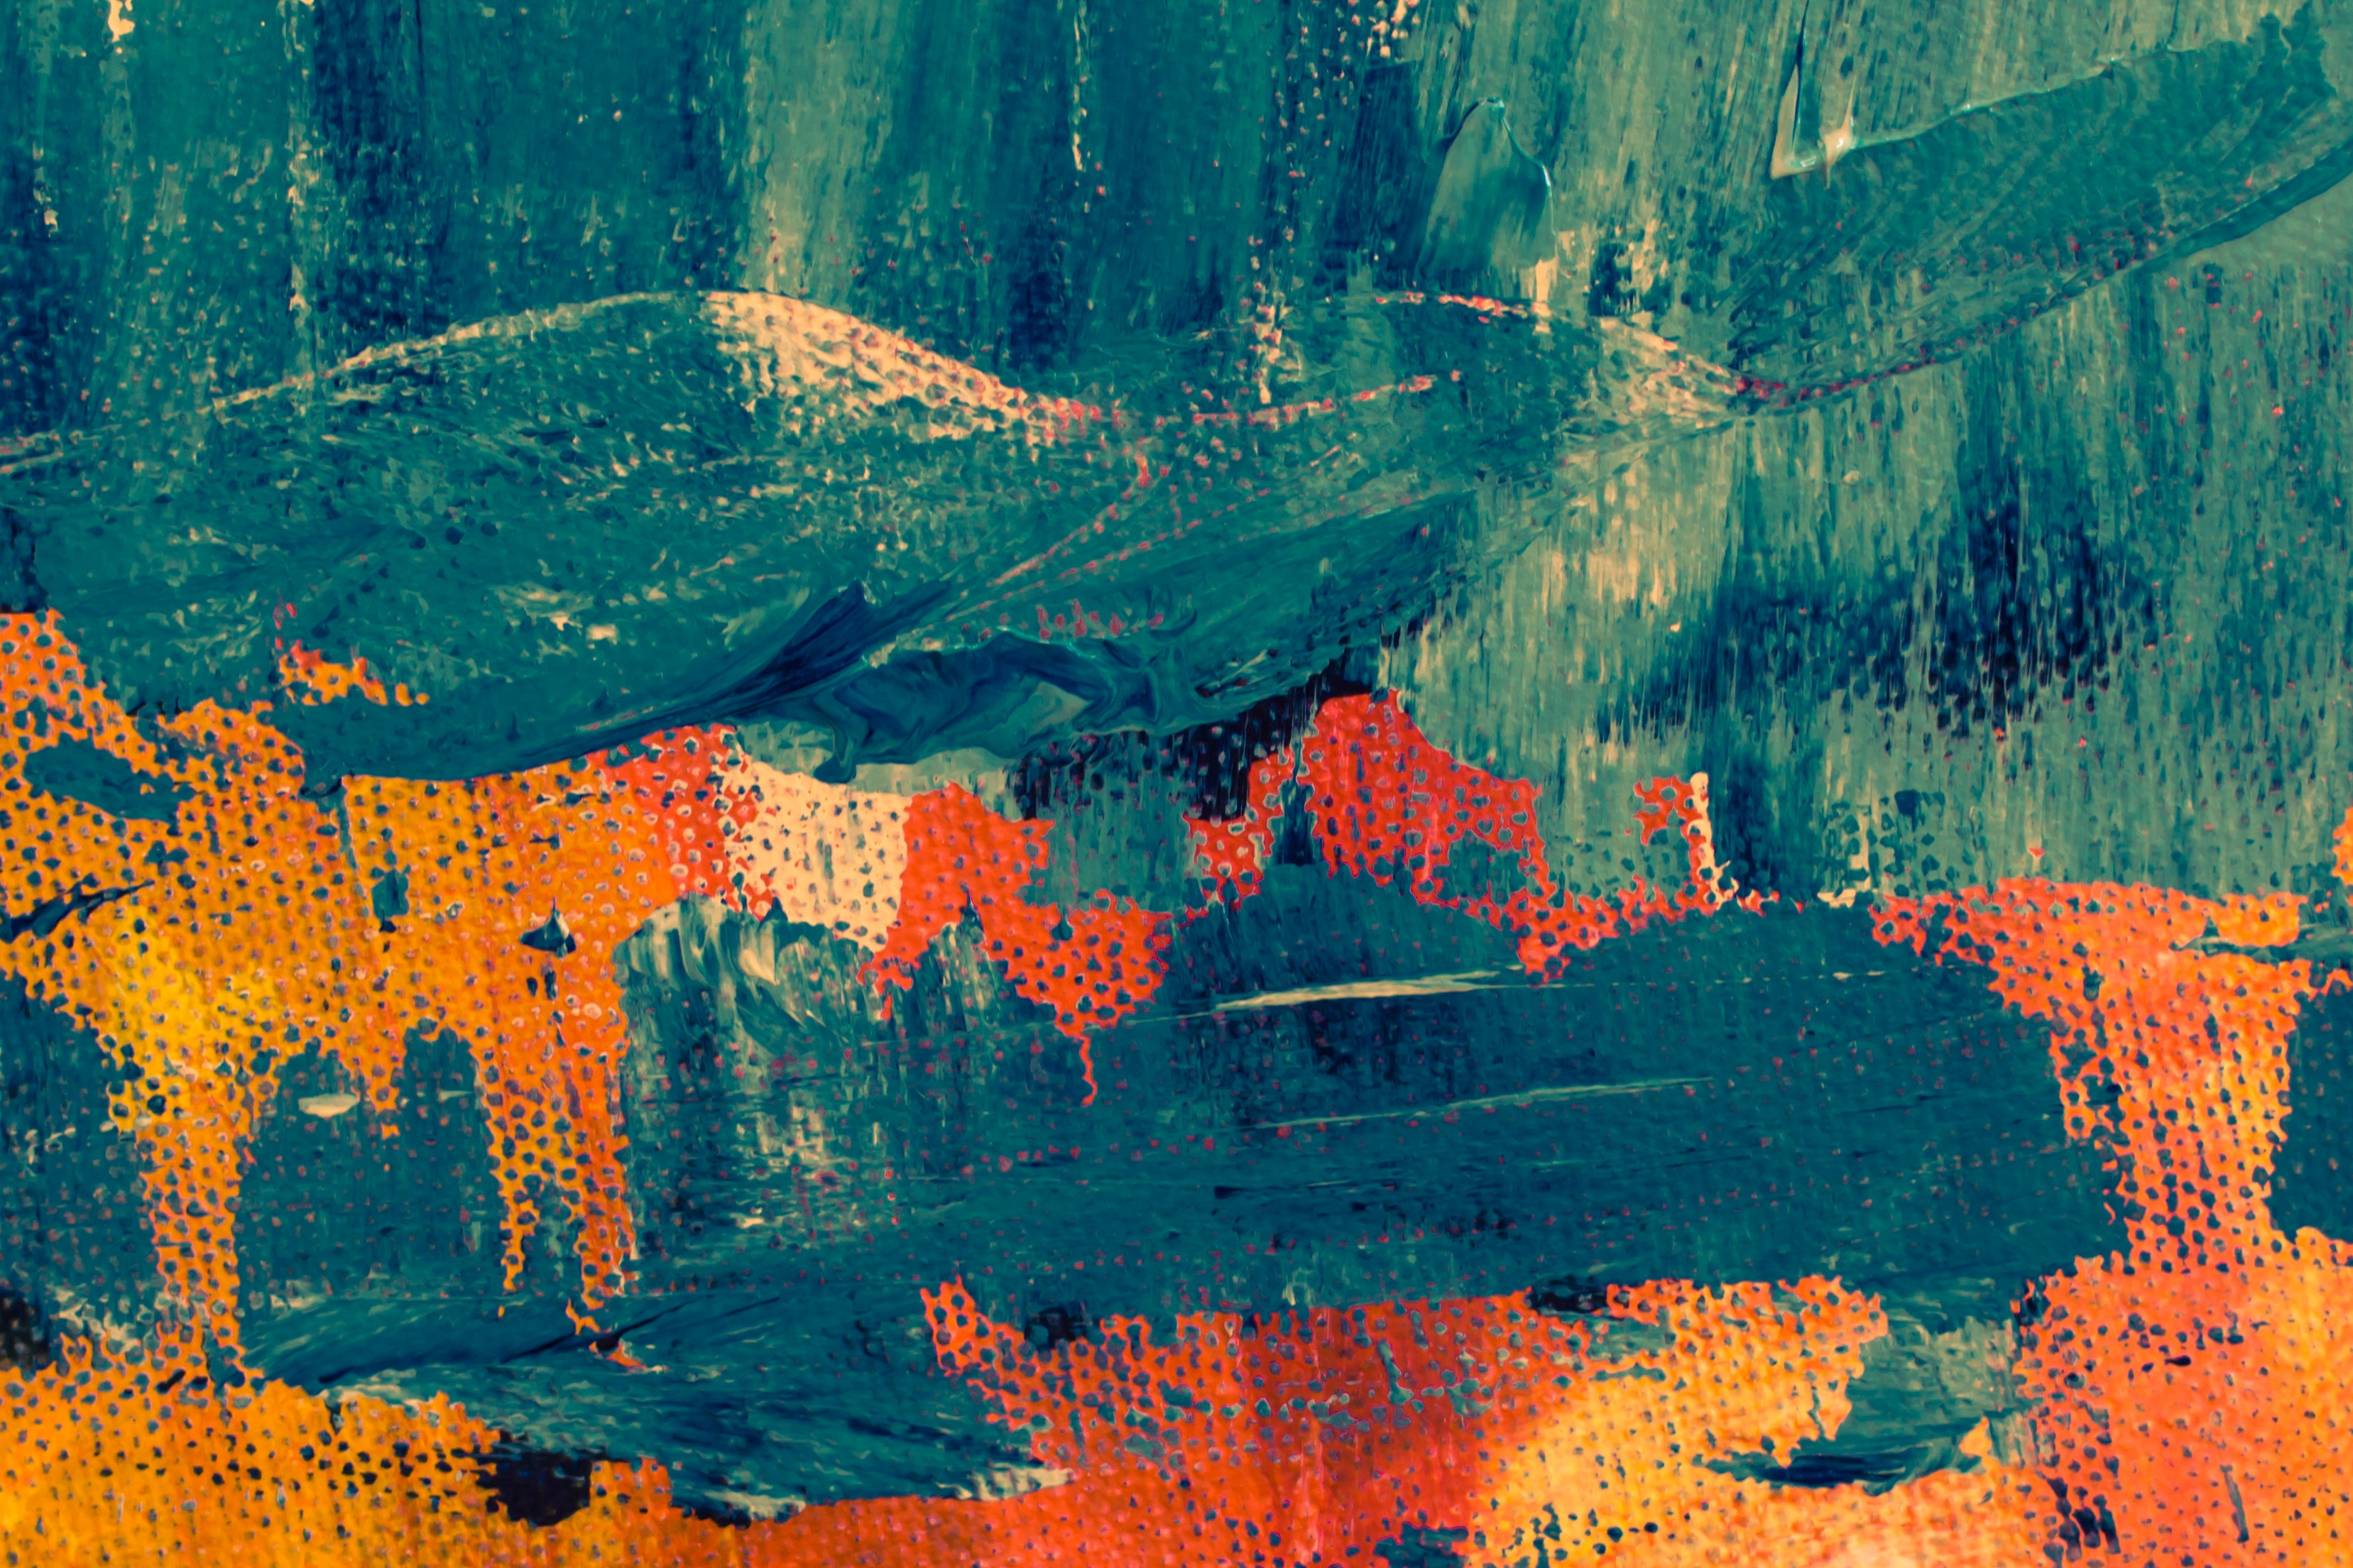 Teal And Orange Abstract Painting Free Stock Photo